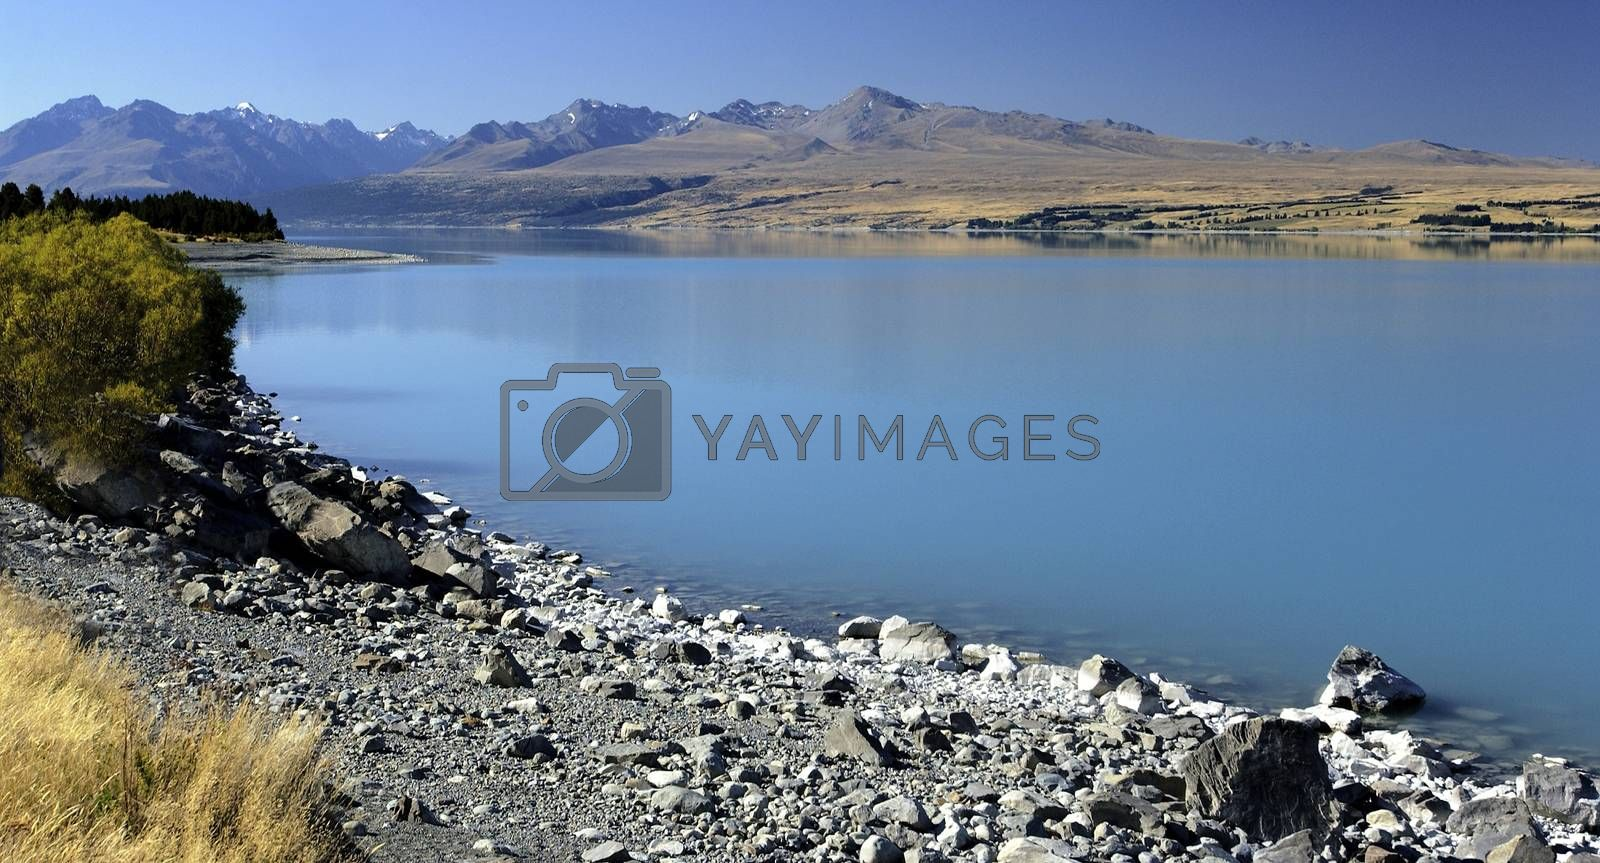 Royalty free image of Mount Cook National Park - New Zealand by SteveAllenPhoto